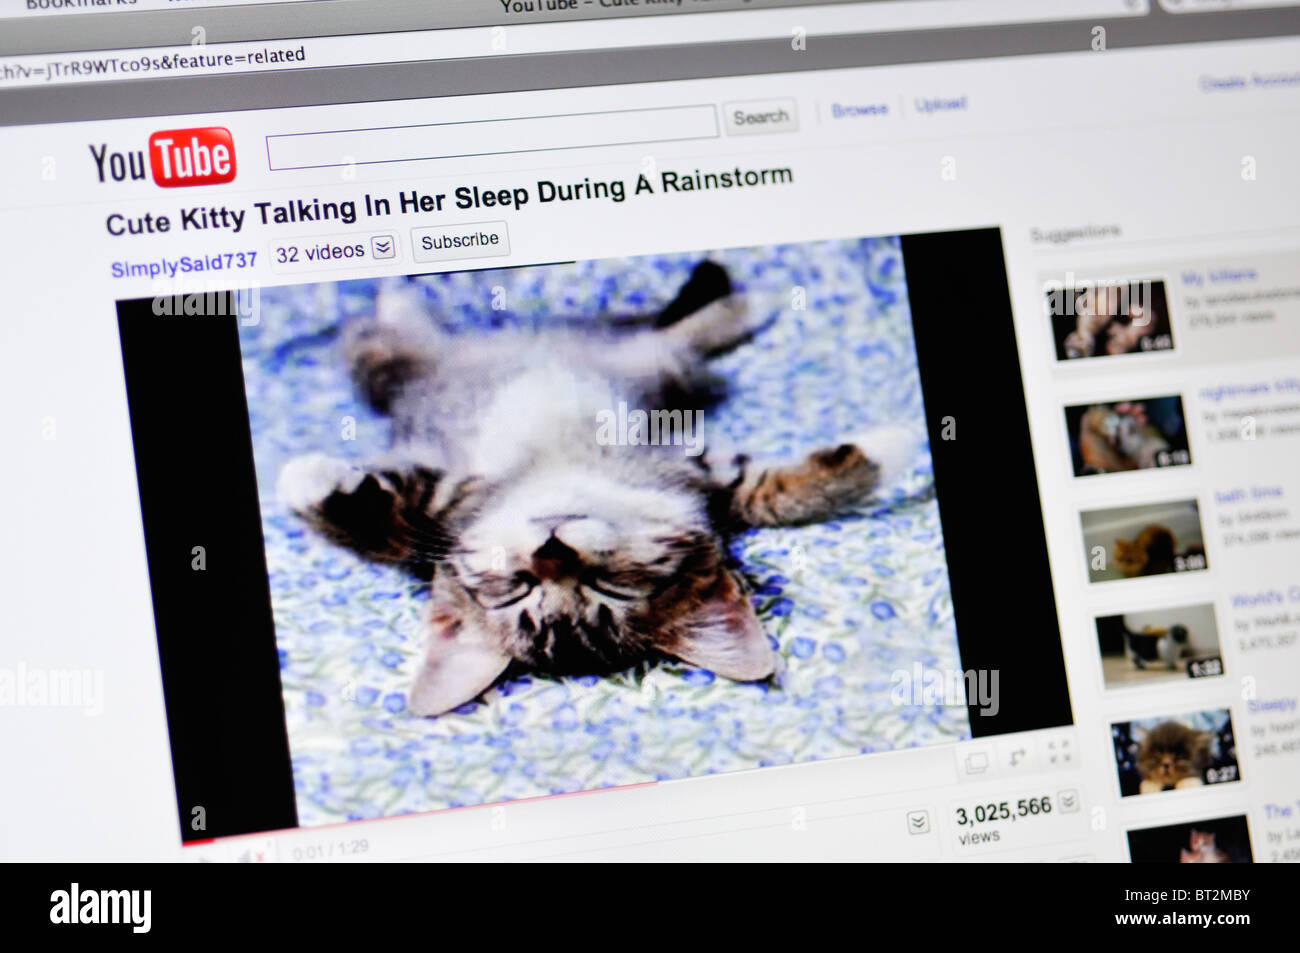 Image of: Cute Youtube Website Showing Funny Cat Alamy Youtube Website Showing Funny Cat Stock Photo 32022031 Alamy